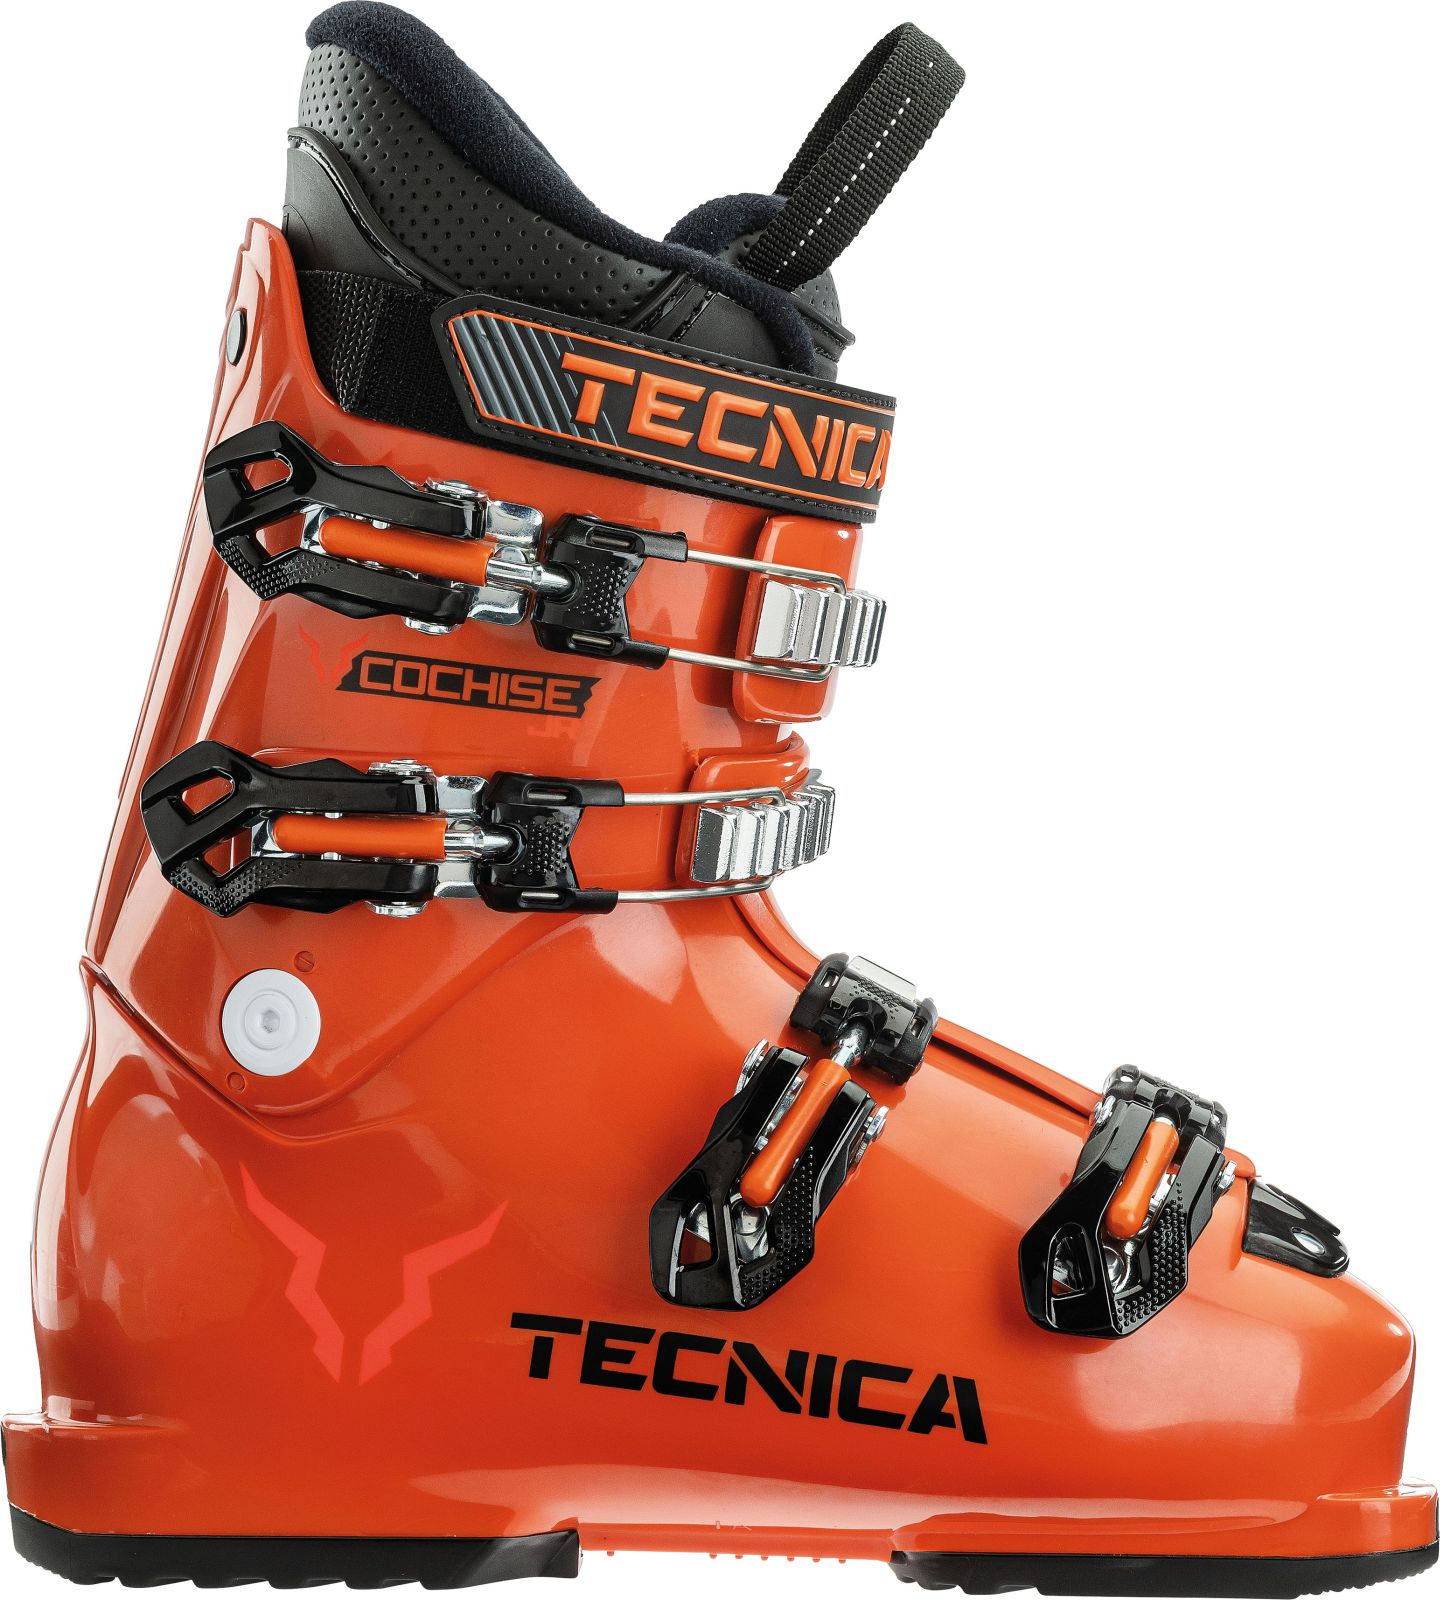 Tecnica Cochise JR - progressive orange 250